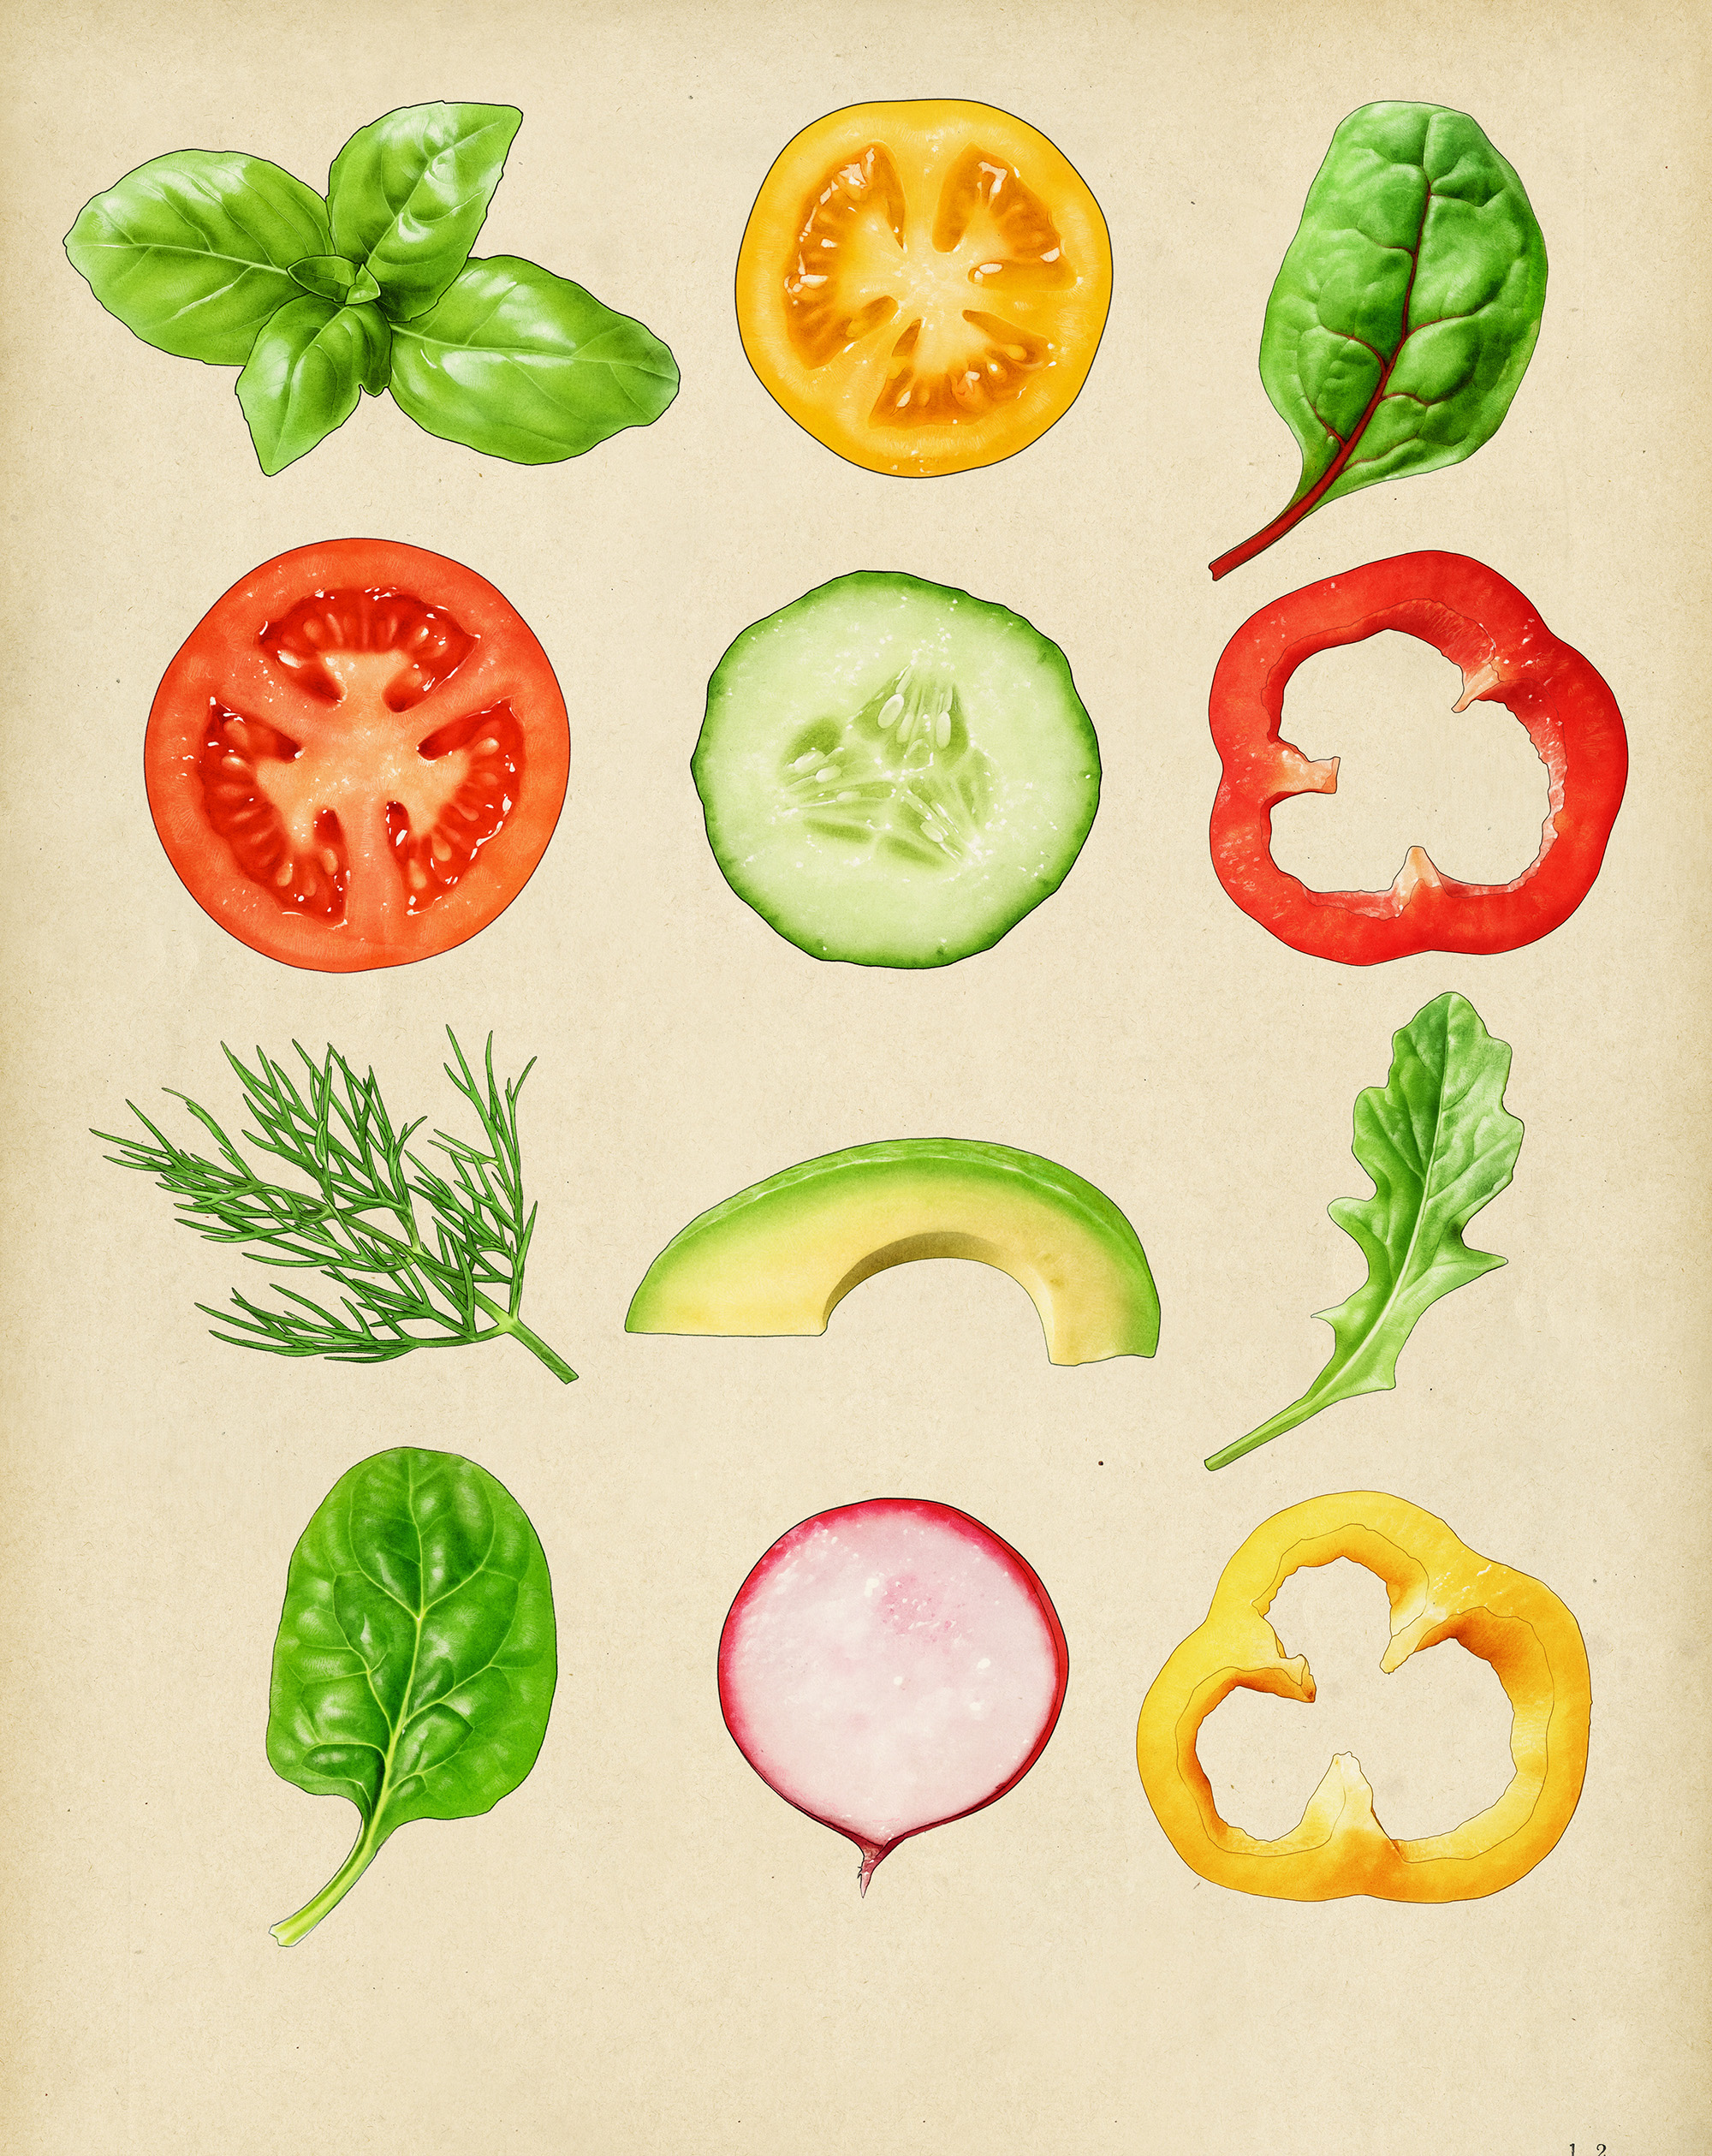 vegetable illustrations for sandwich packaging Parsons spreads with chard dill spinach tomato radish pepper avocado cucumber basil